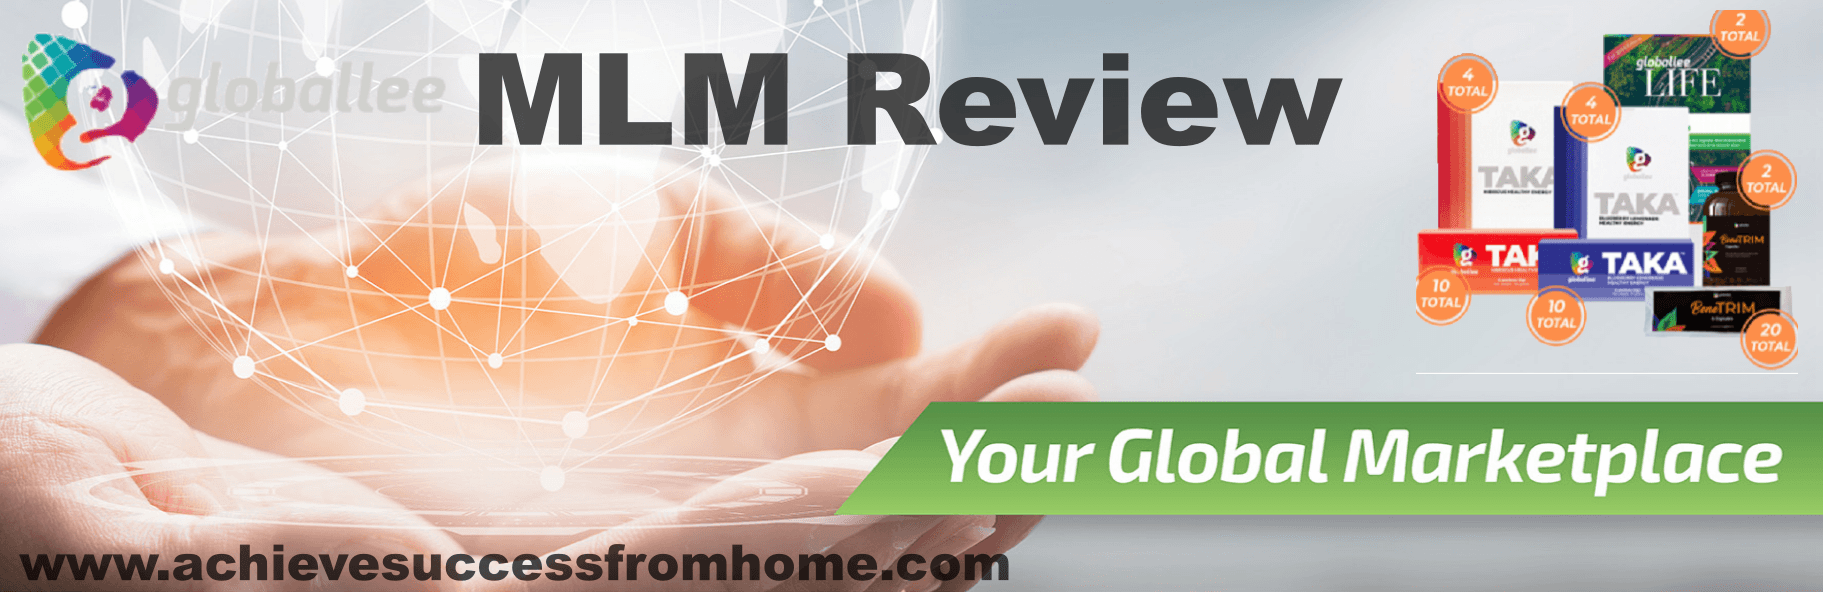 a Globallee MLM Review - OVERPRICED with No Scientific Evidence